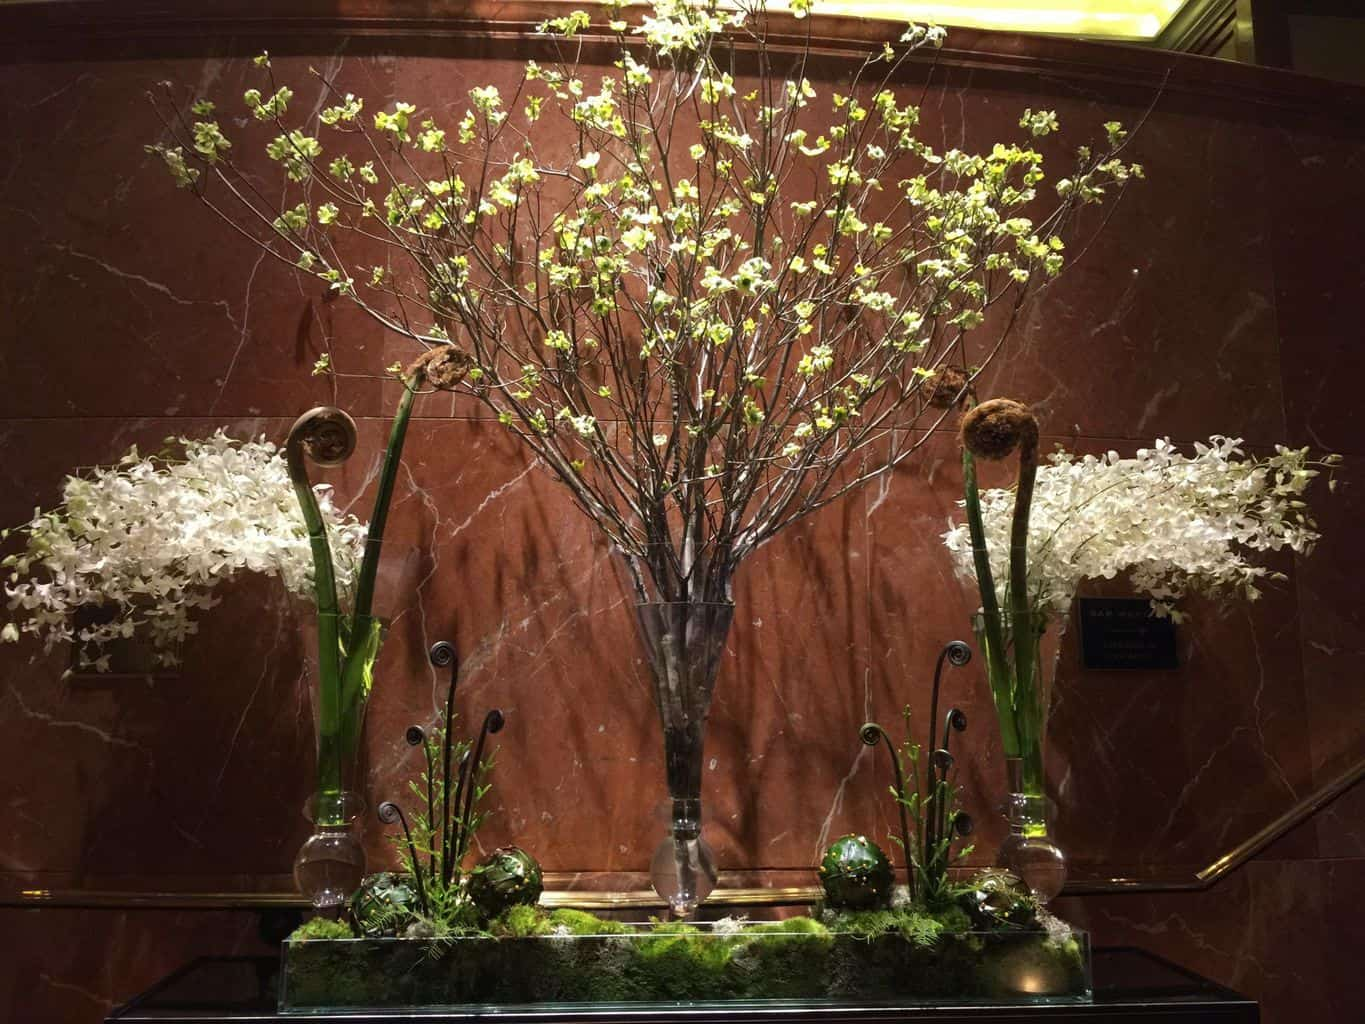 Dogwood, orchids and fern fiddleheads in a dramatic display